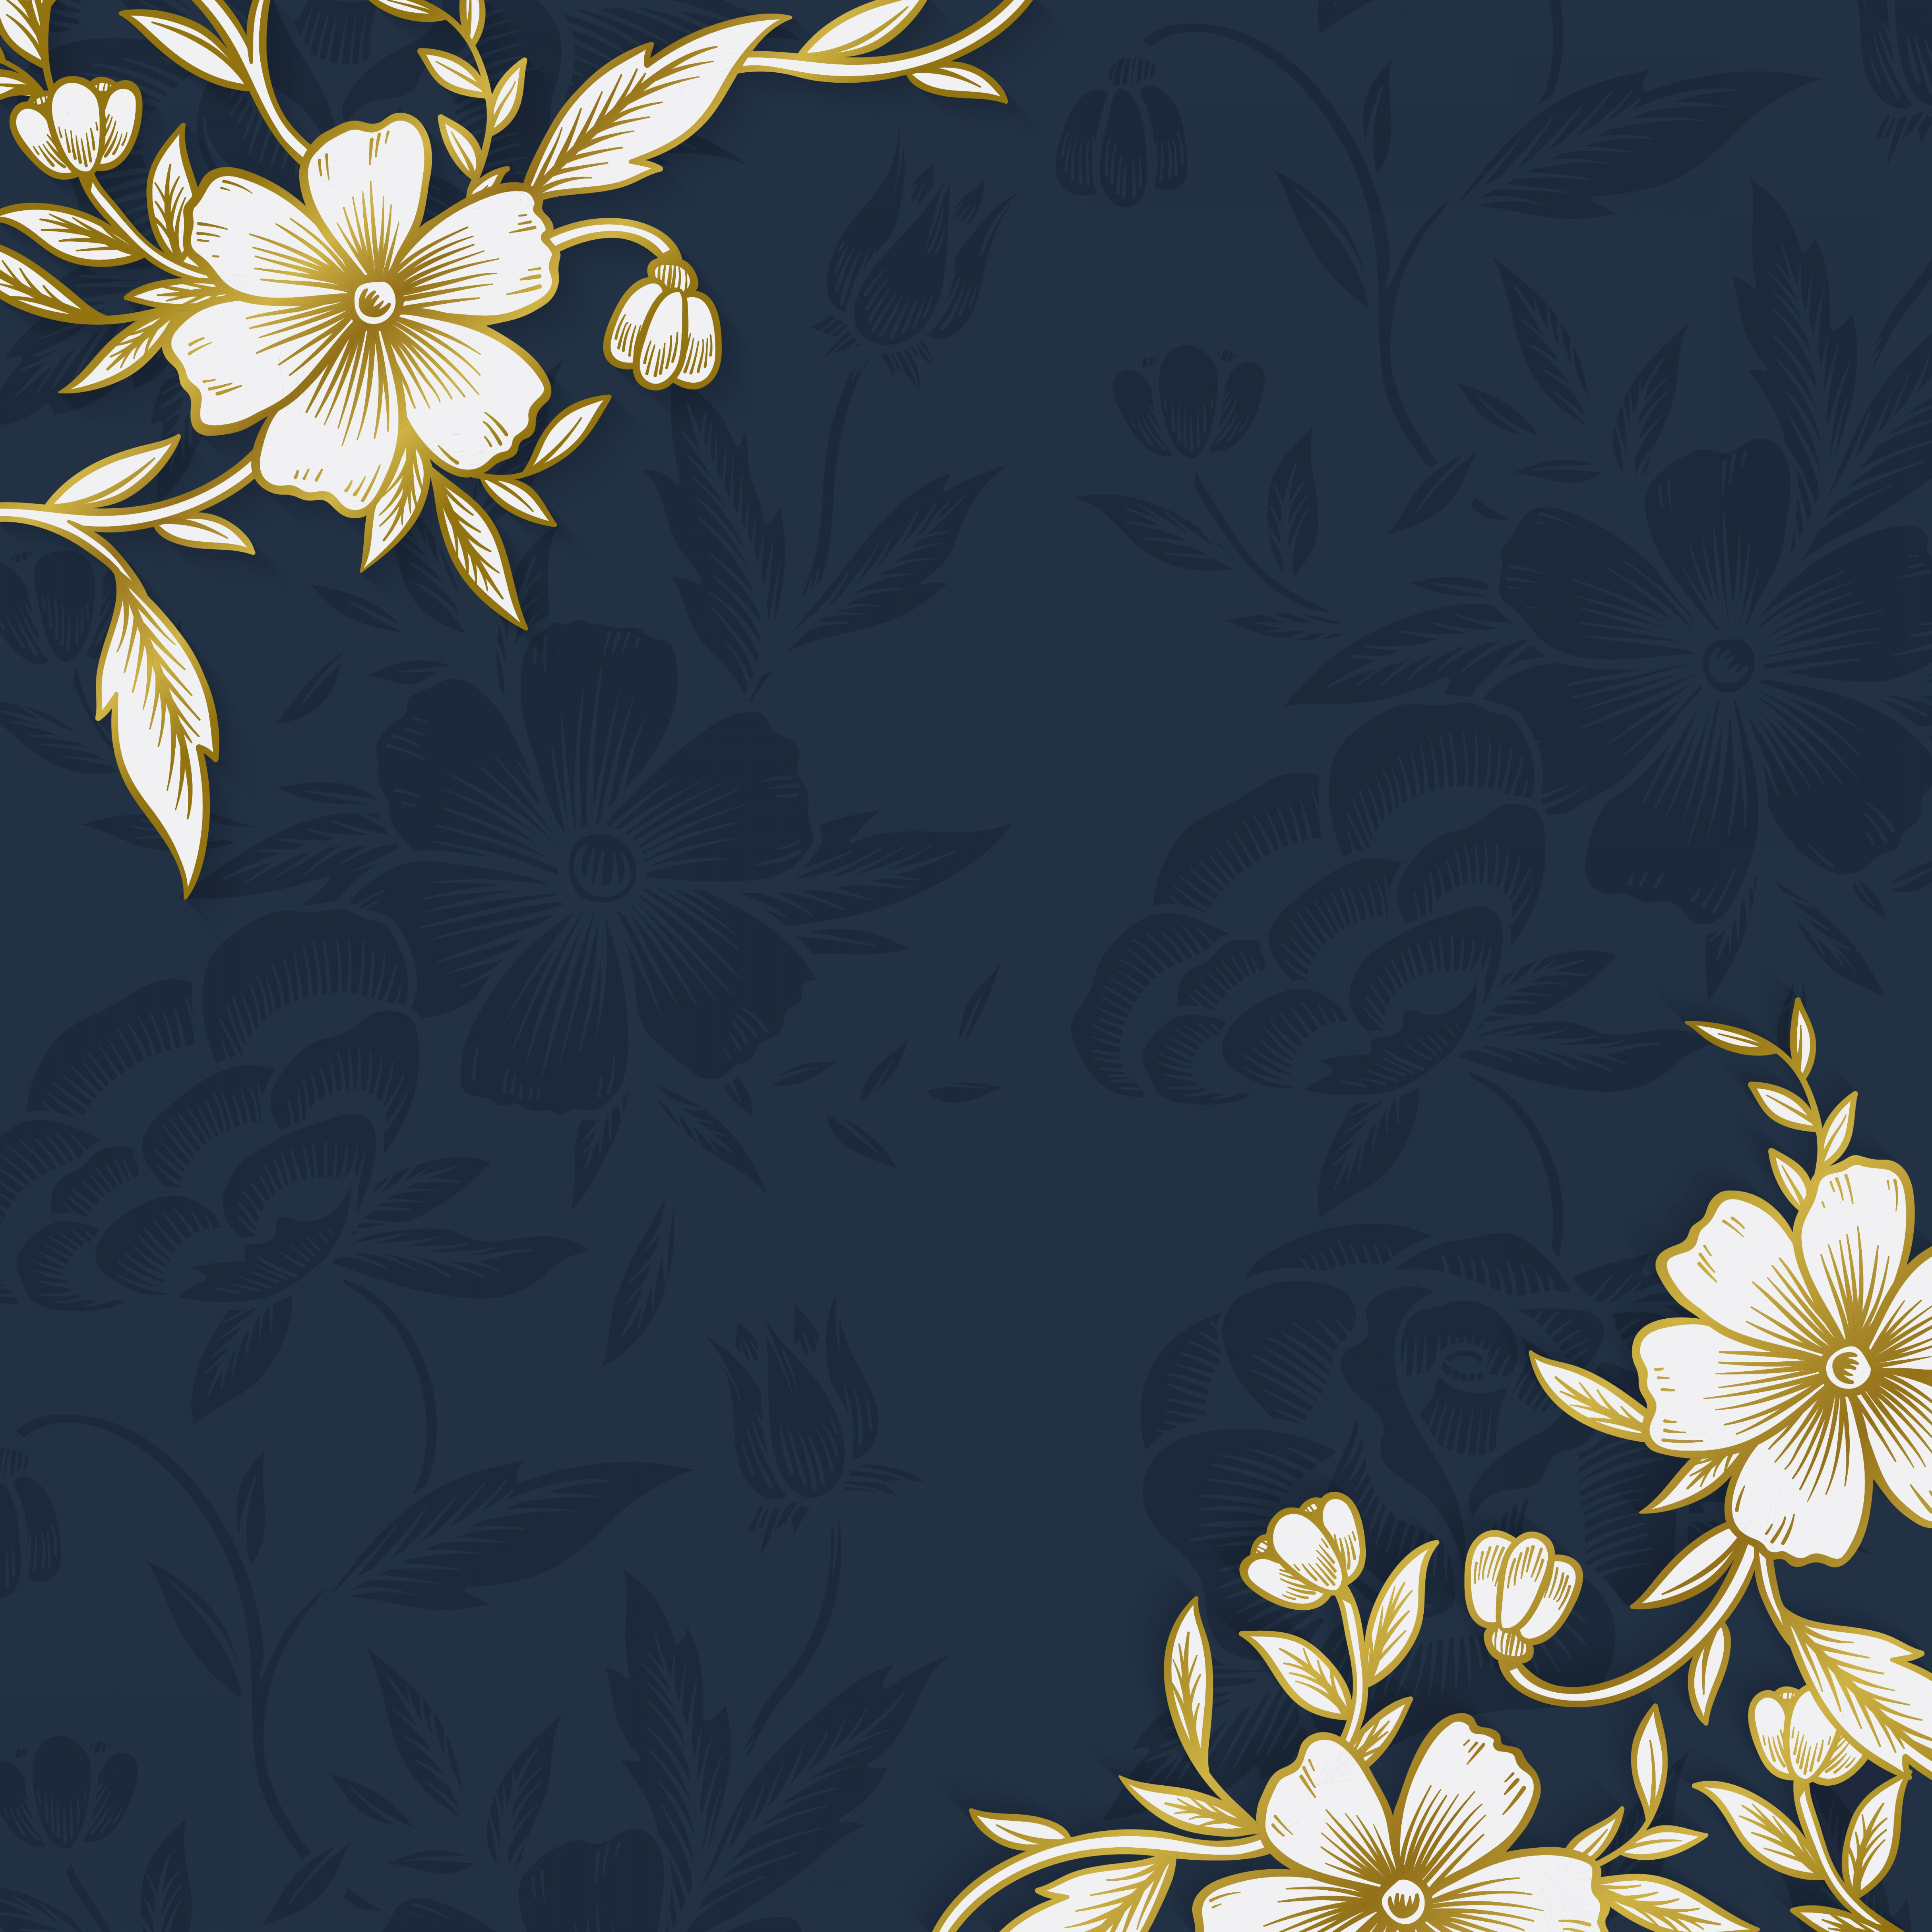 Gold And Blue Flower Vector: Floral Border With Copy Space